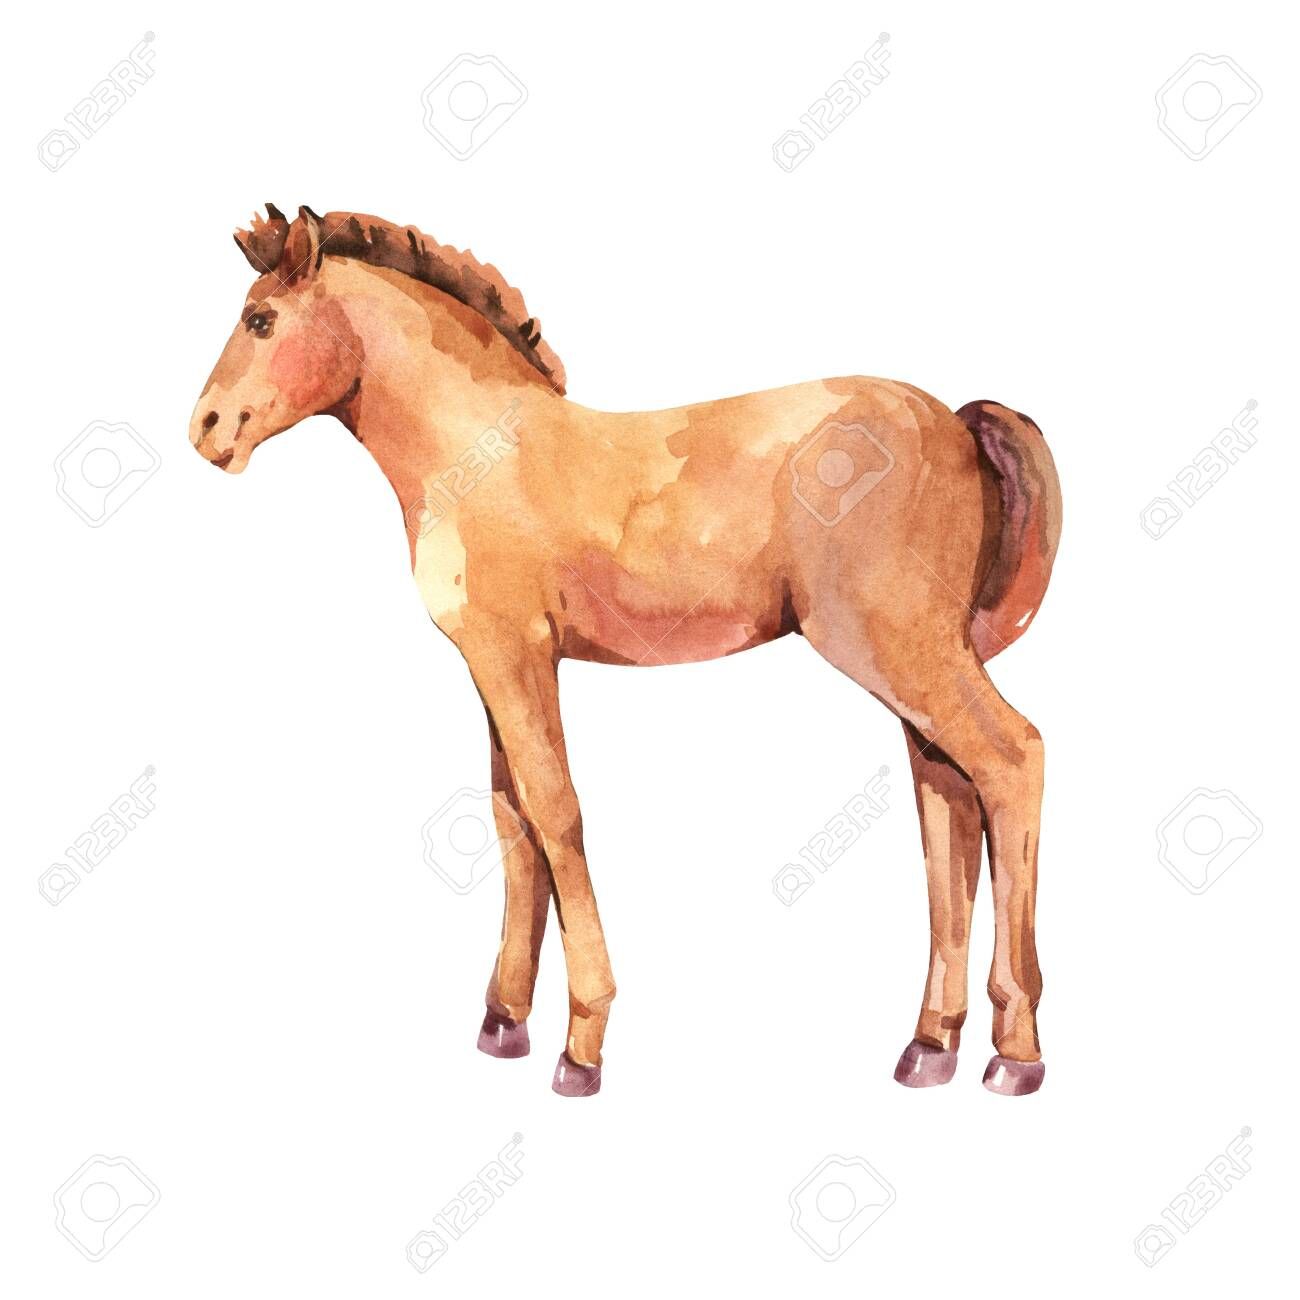 Watercolor Baby Horse Illustration Isolated On White Background Stock Photo Picture And Royalty Free Image Image 149992634